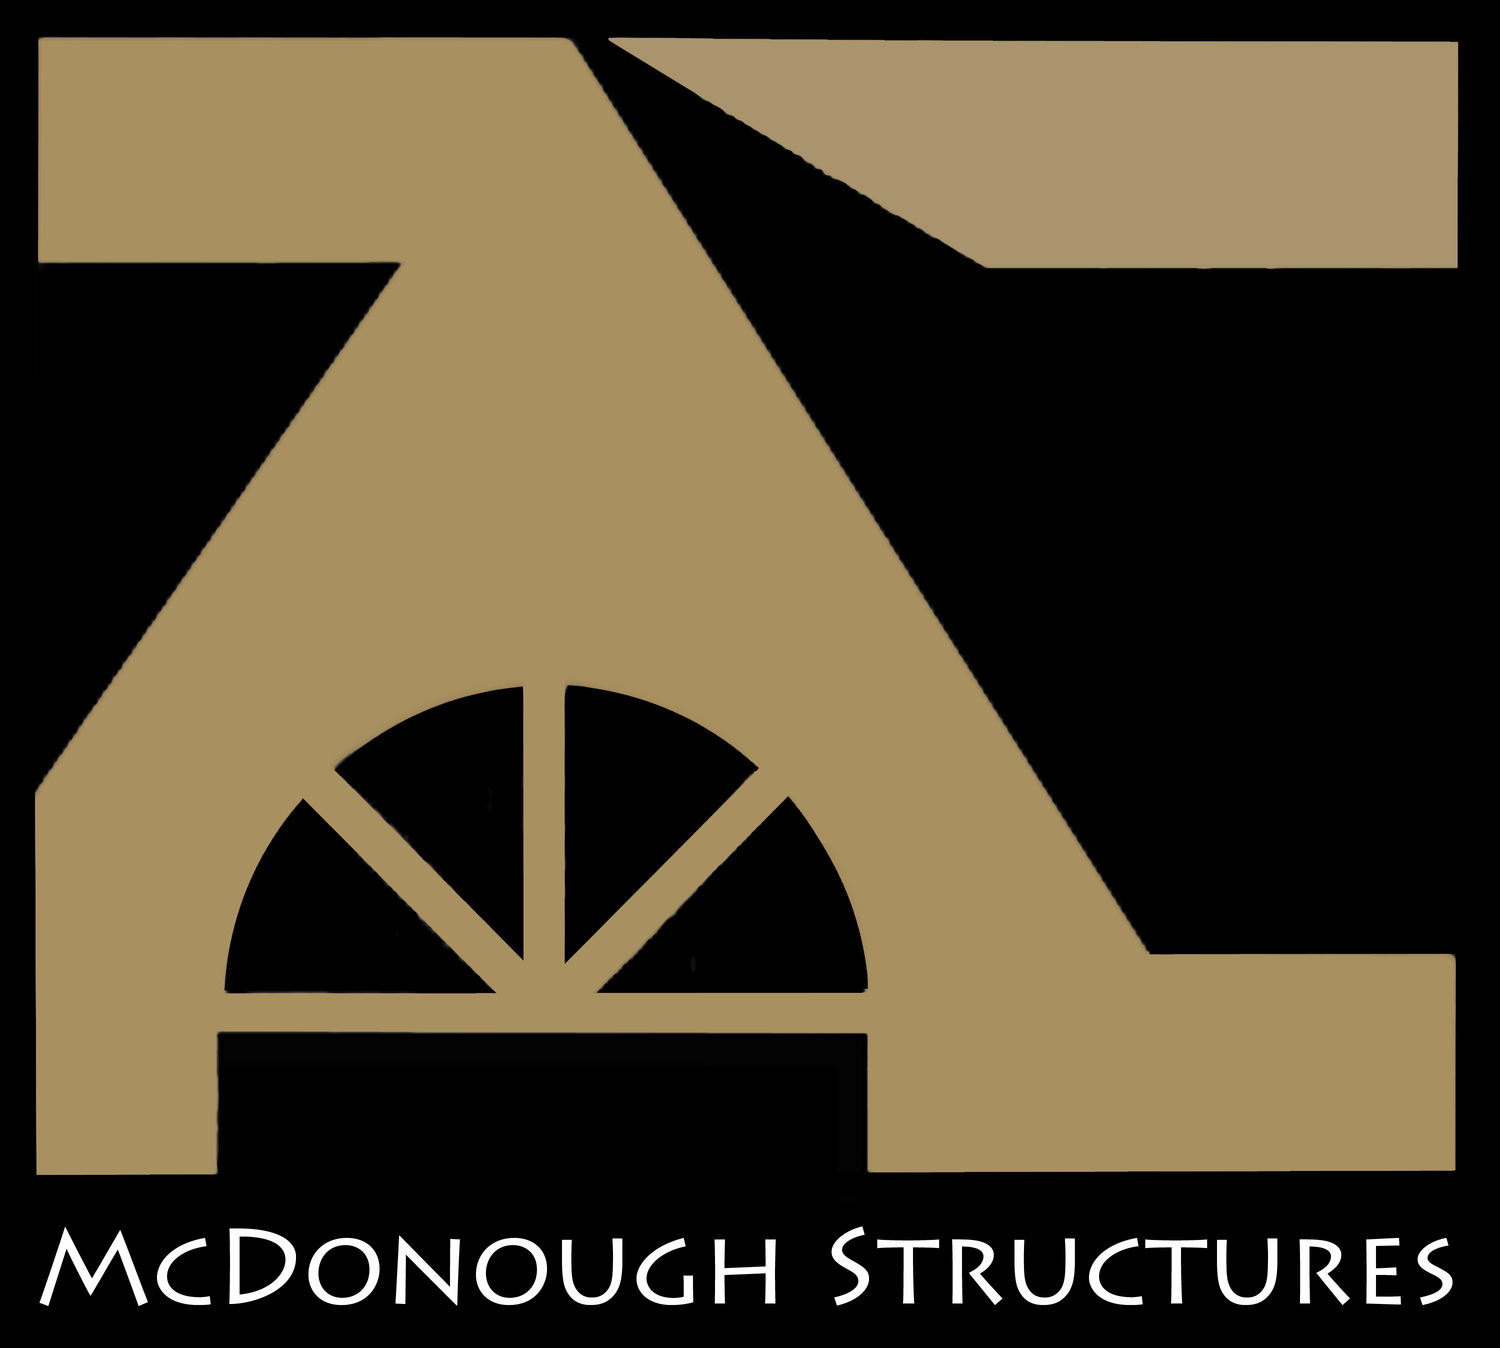 McDonough Structures